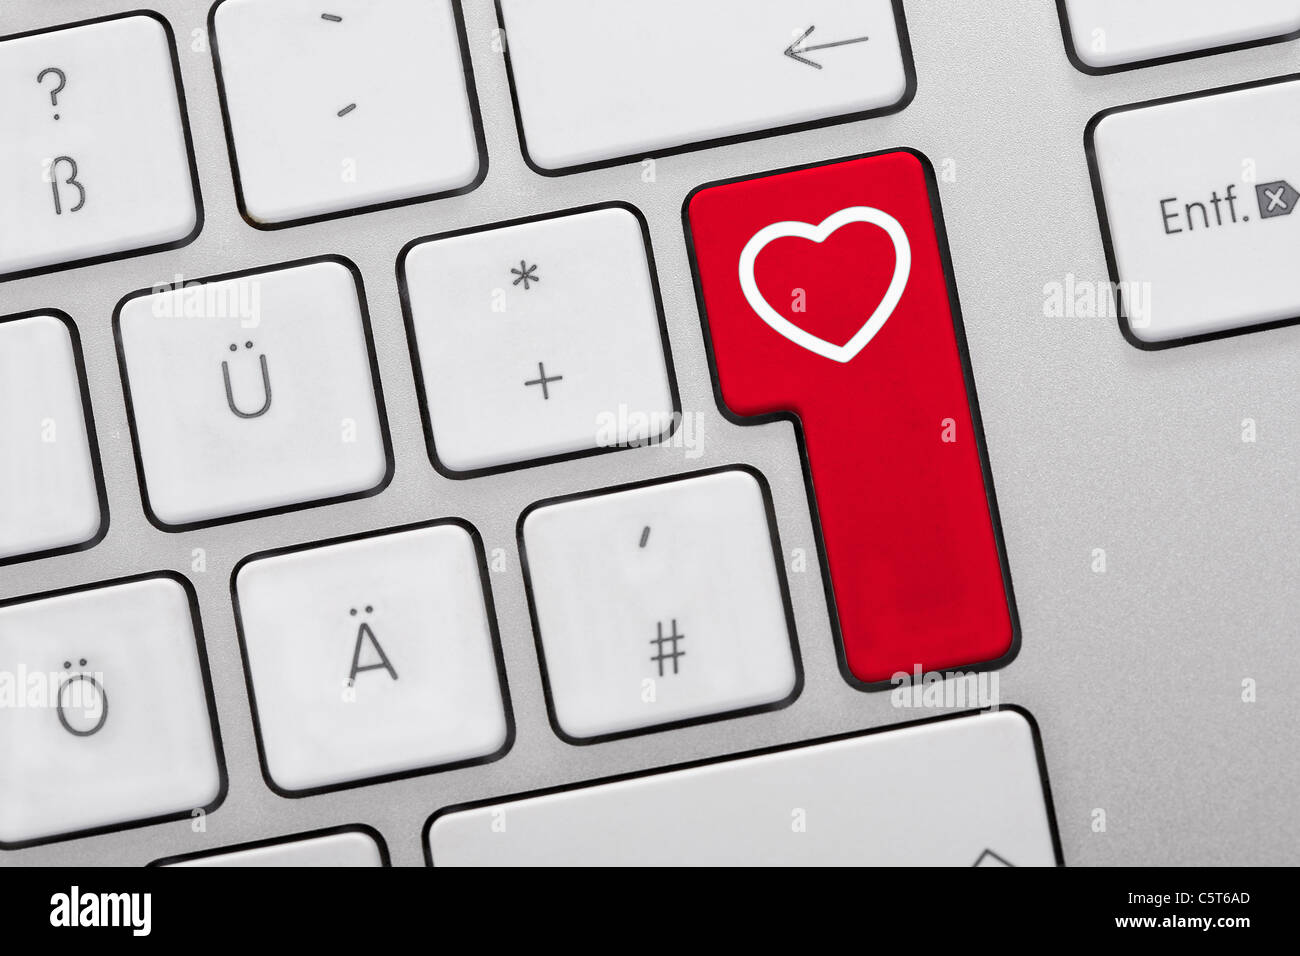 Close Up Of Computer Keys With Heart Symbol On Red Key Stock Photo